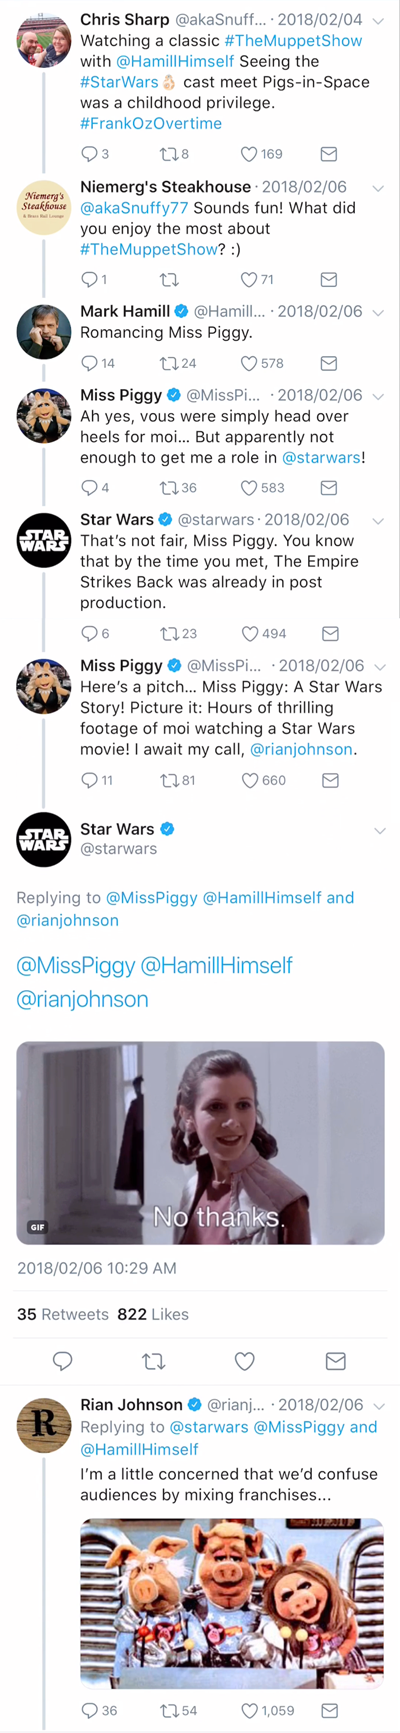 Twitter conversation between Star Wars, Miss Piggy, Mark Hamill, Rian Johnson and more